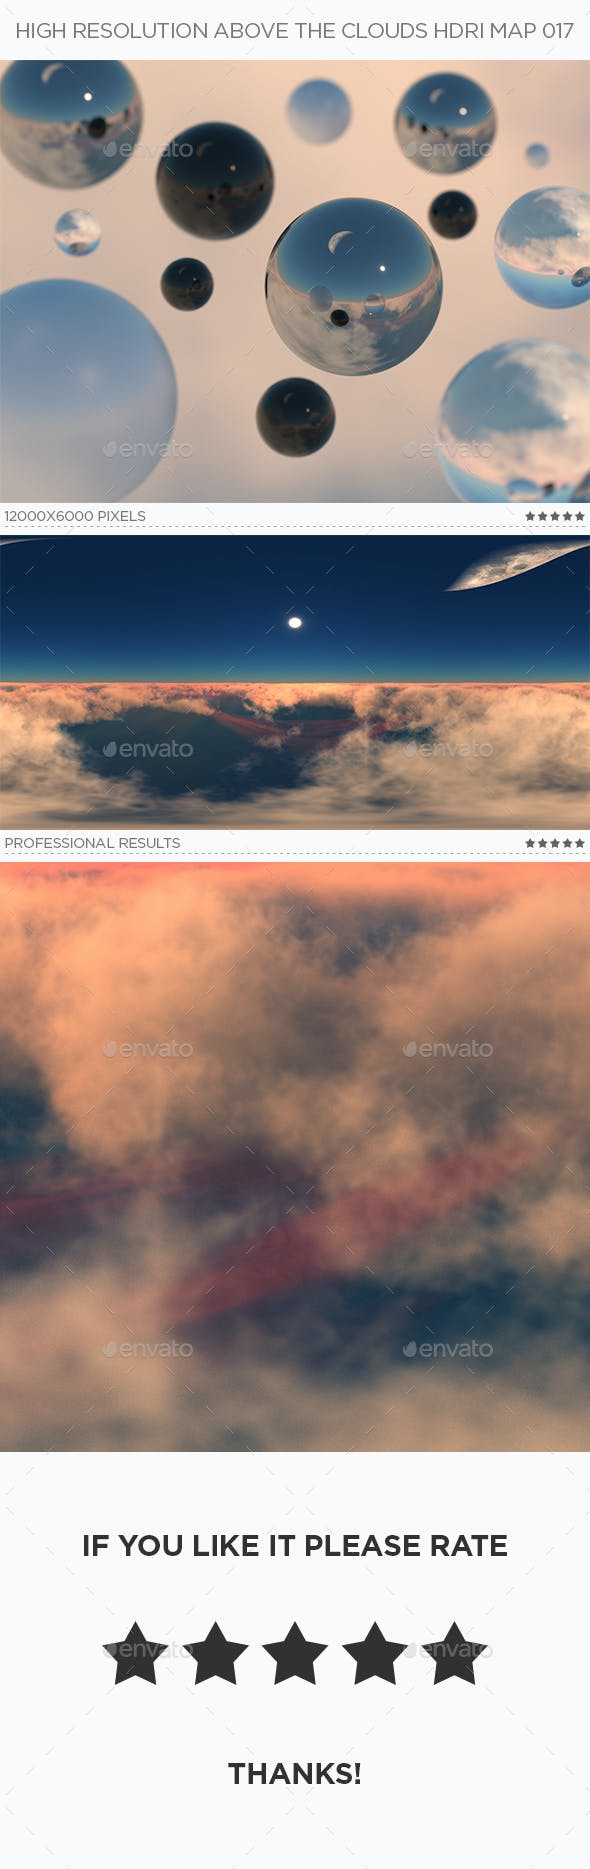 High Resolution Above The Clouds HDRi Map 017 - 3DOcean Item for Sale